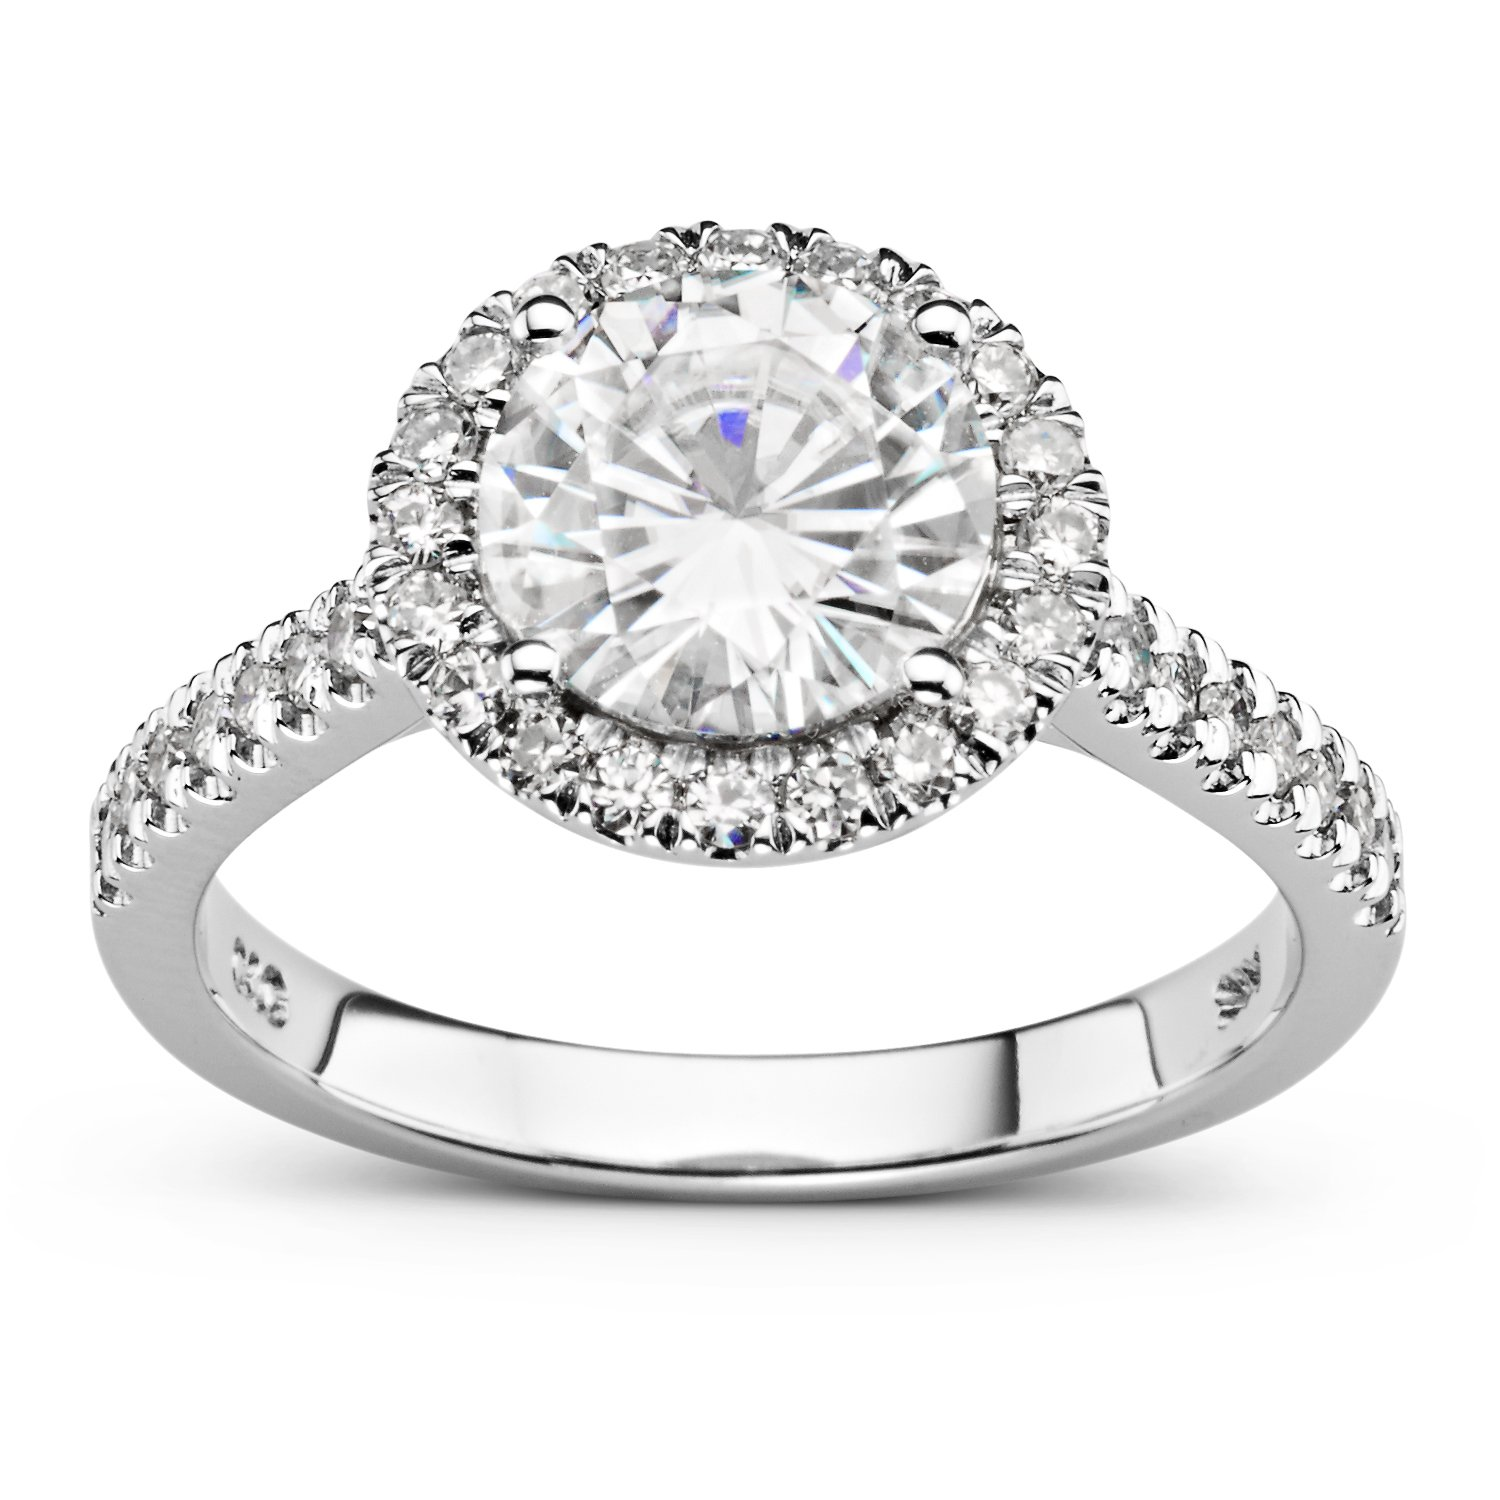 Forever Brilliant Round 8.0mm Moissanite Engagement Ring-size 6, 2.26cttw DEW By Charles & Colvard